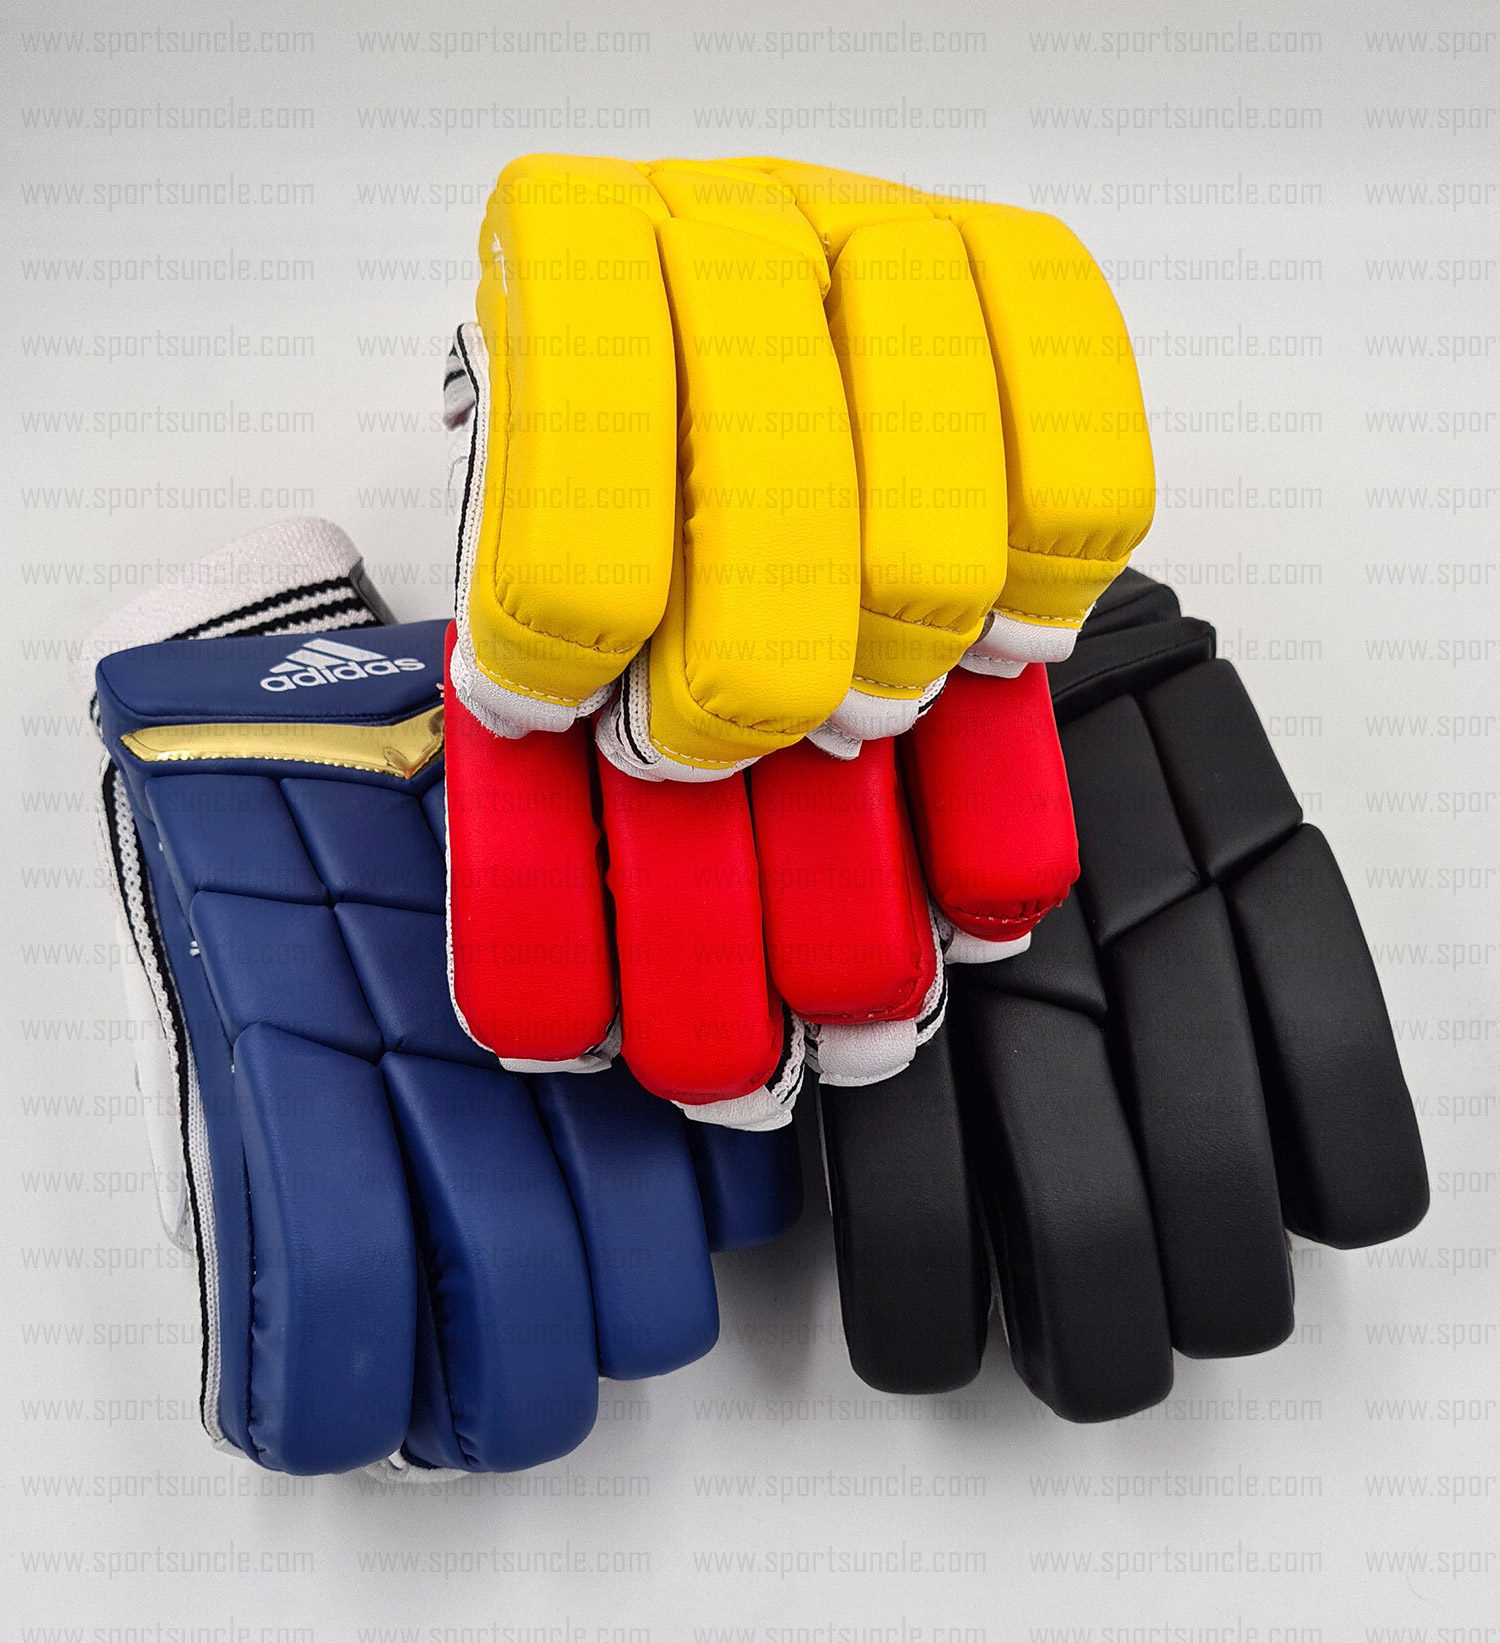 ipl edition cricket batting gloves